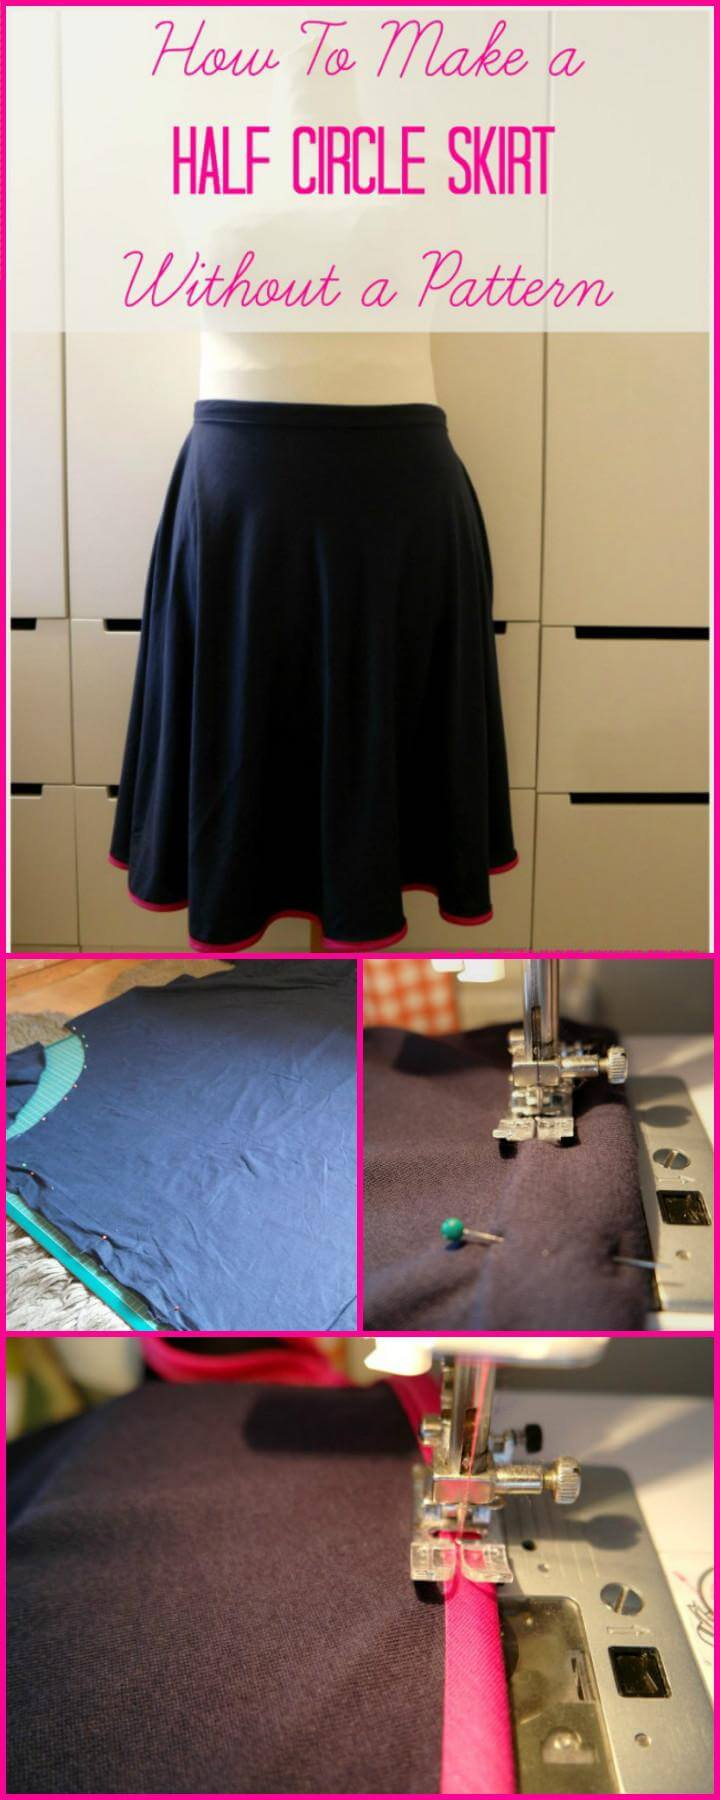 DIY half circle skirt without a pattern